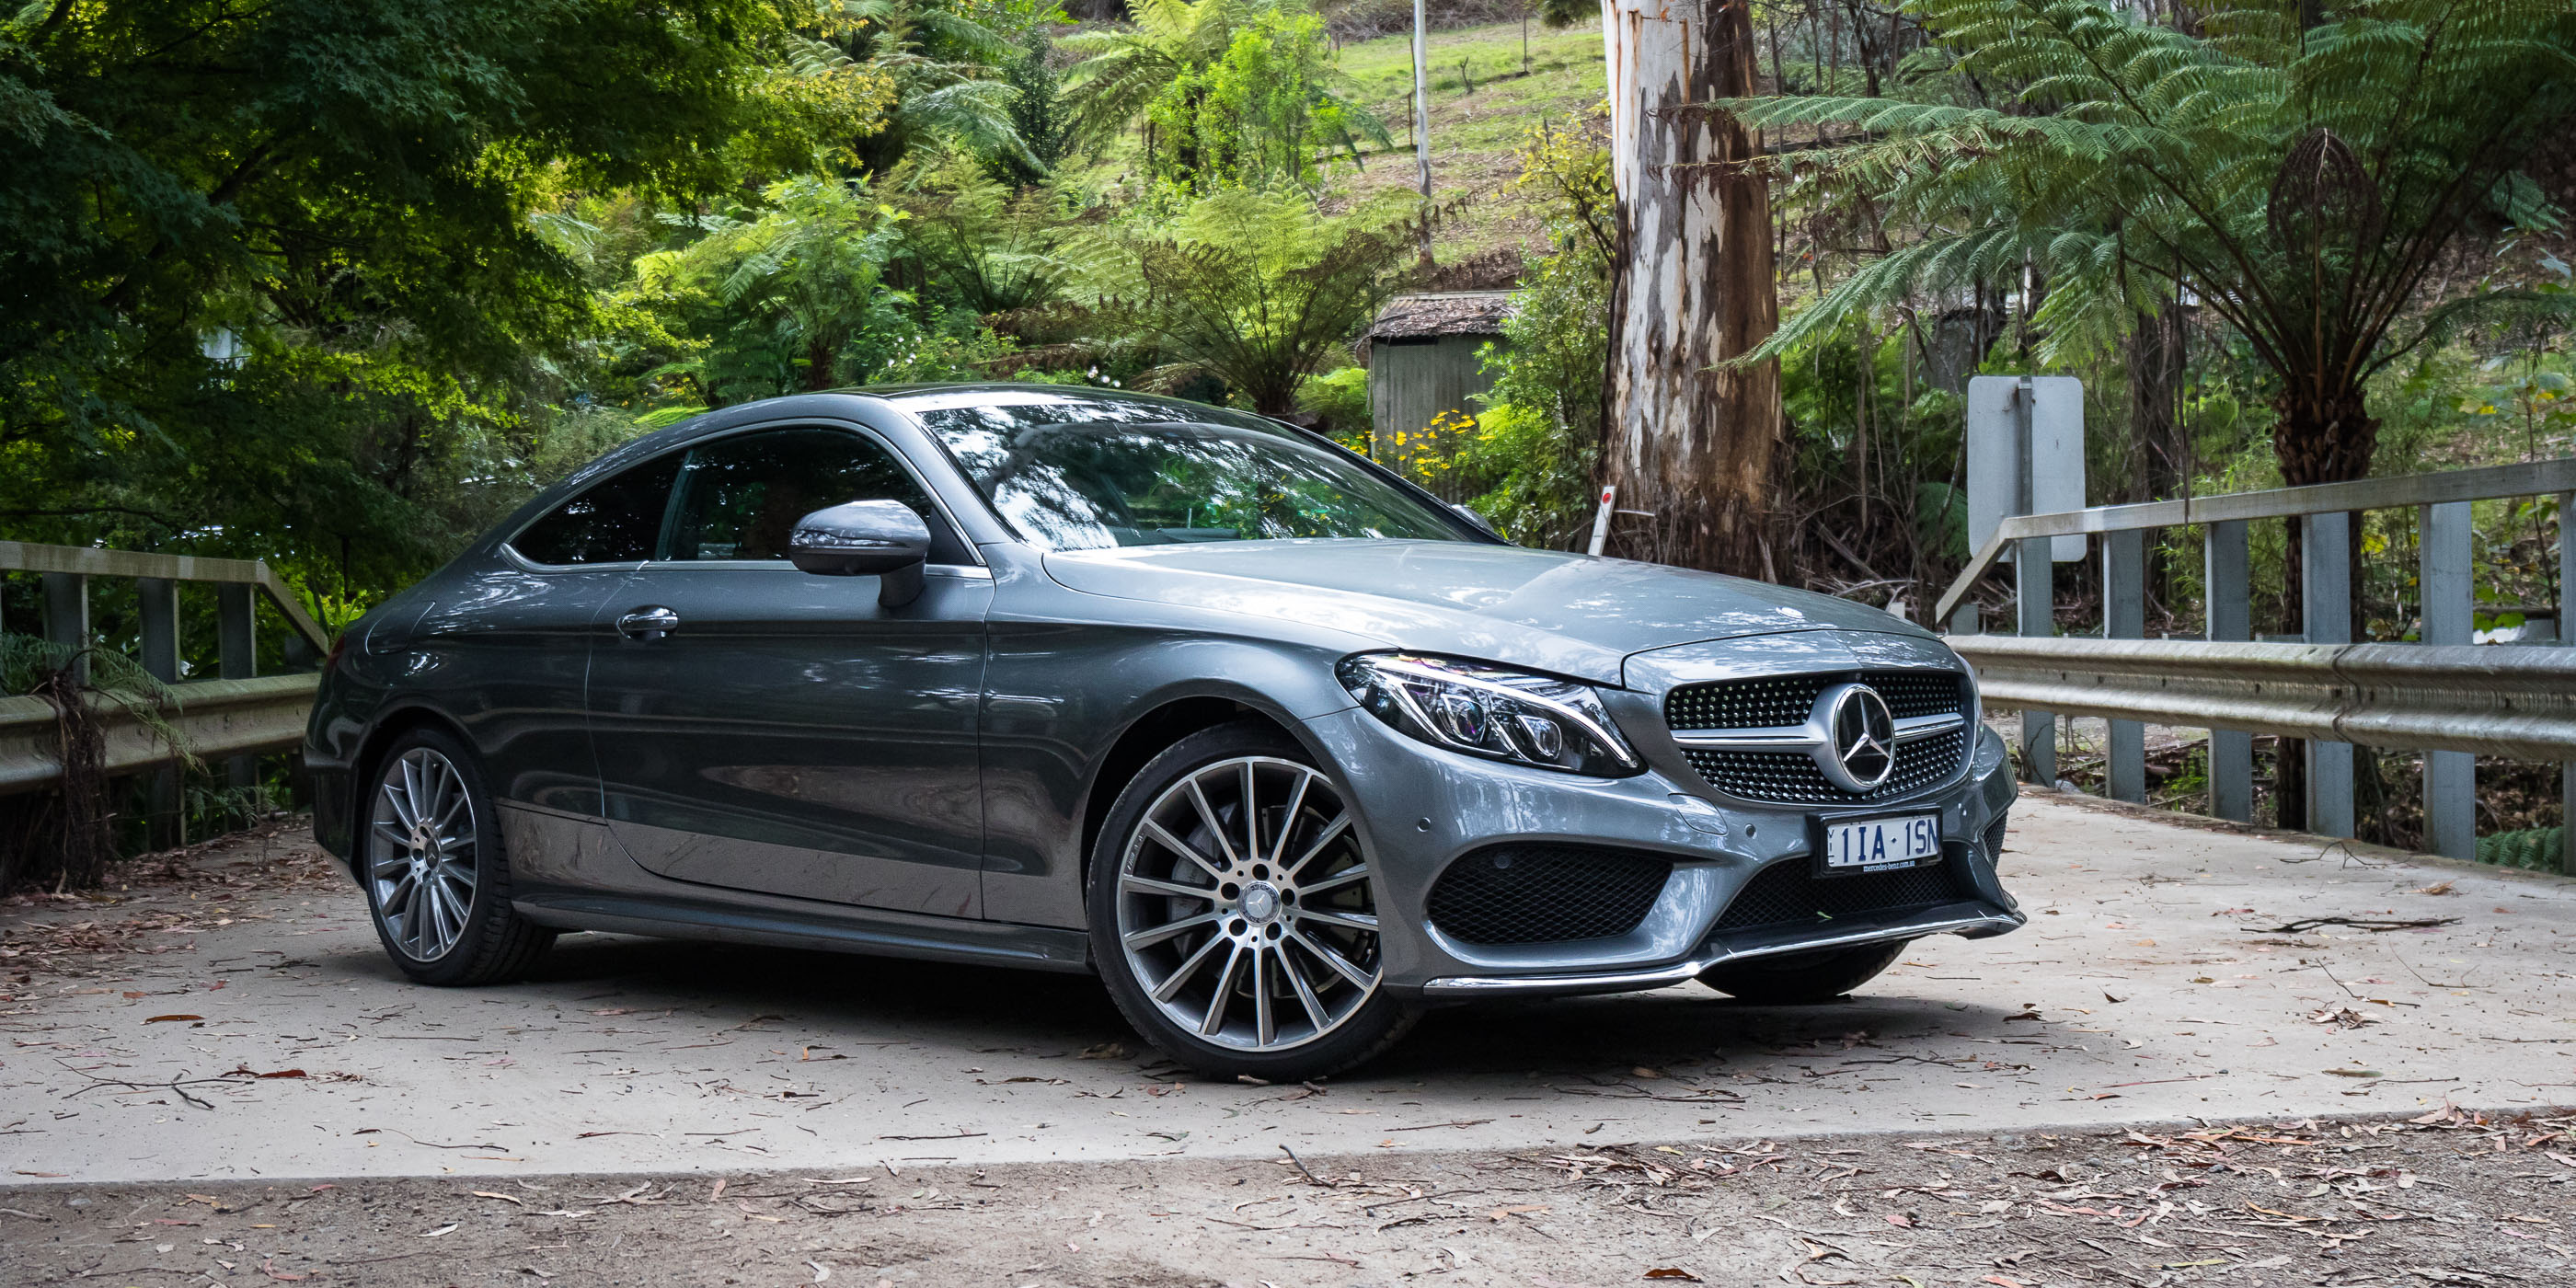 2016 mercedes benz c class coupe review caradvice for Mercedes benz c class pictures